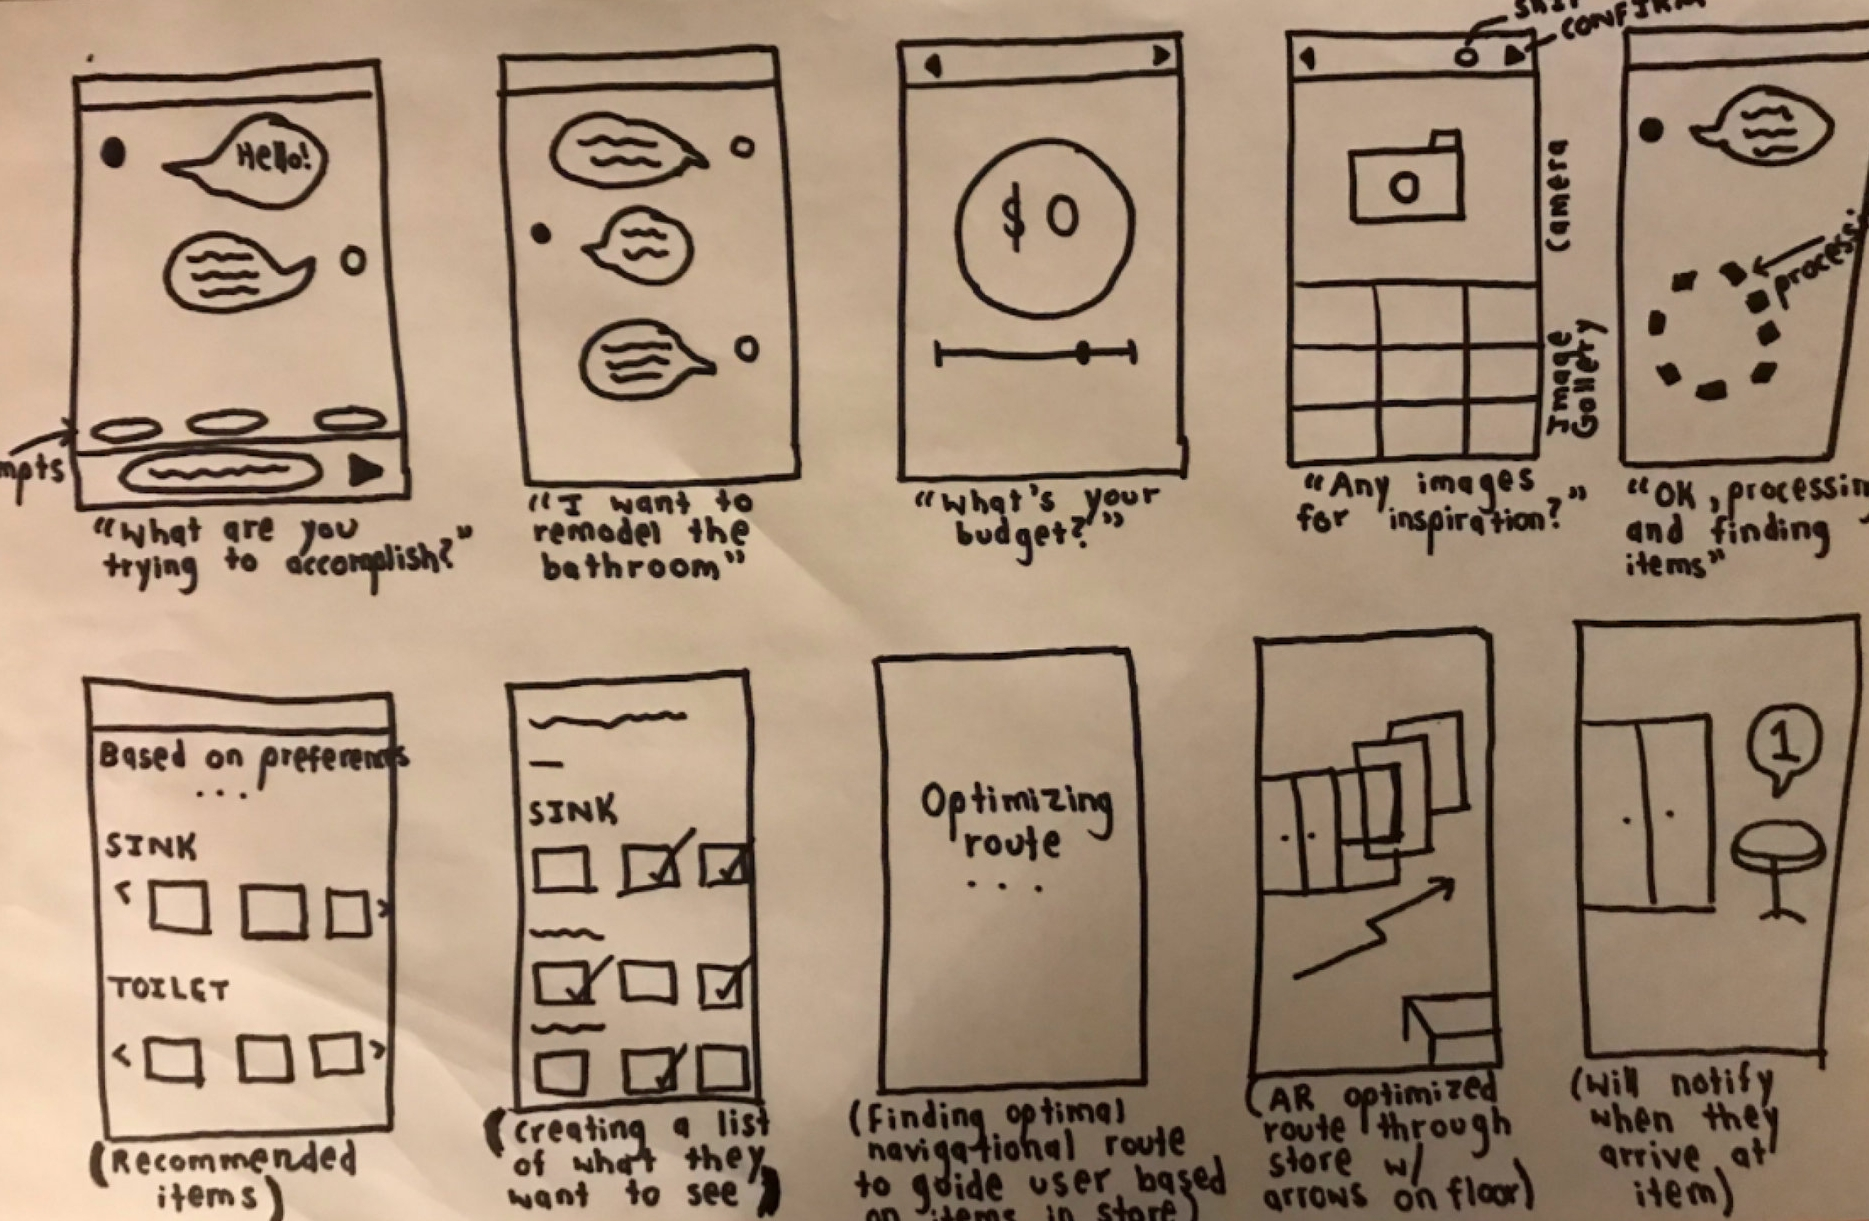 We drew low fidelity wireframes to visualize our concept around a Construction Junction chatbot guide.